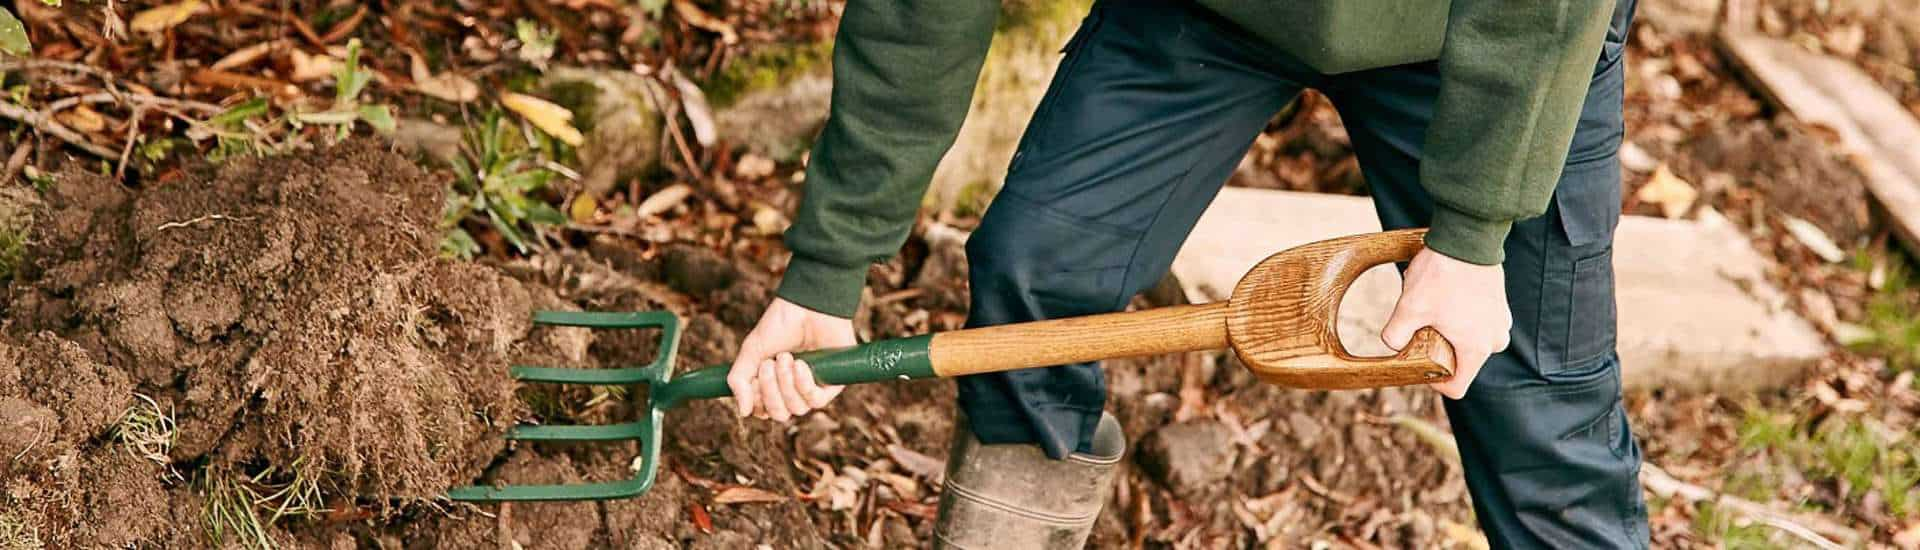 10 Must-have tools for your garden 5 - Garden Tools - 1001 Gardens